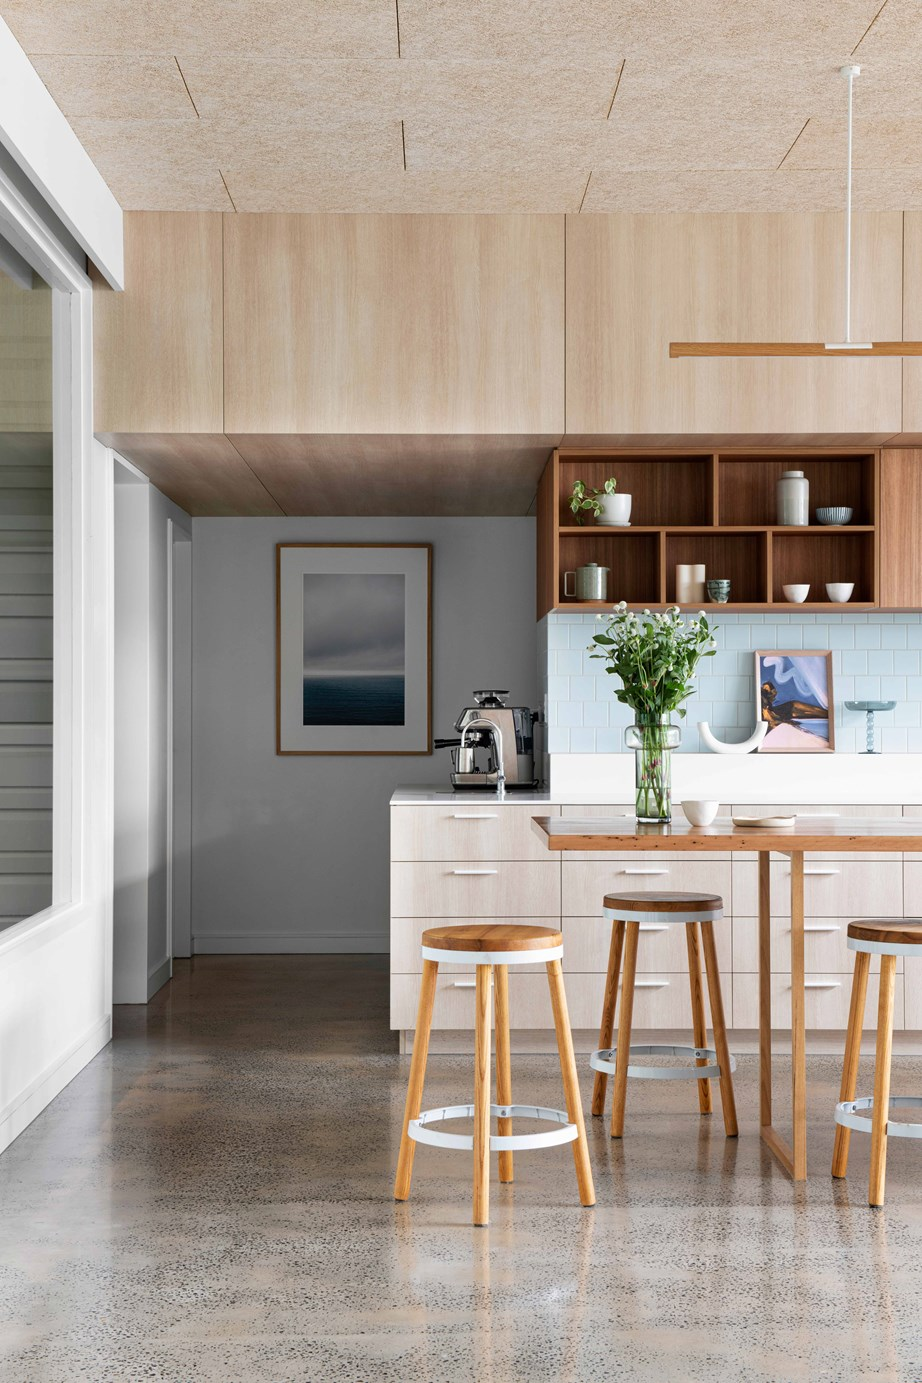 """Concrete makes for easy to clean flooring in the kitchen of [this renovated Queenslander](https://www.homestolove.com.au/queenslander-double-height-renovation-22963 target=""""_blank""""), creating a relaxed but glamorous family home."""